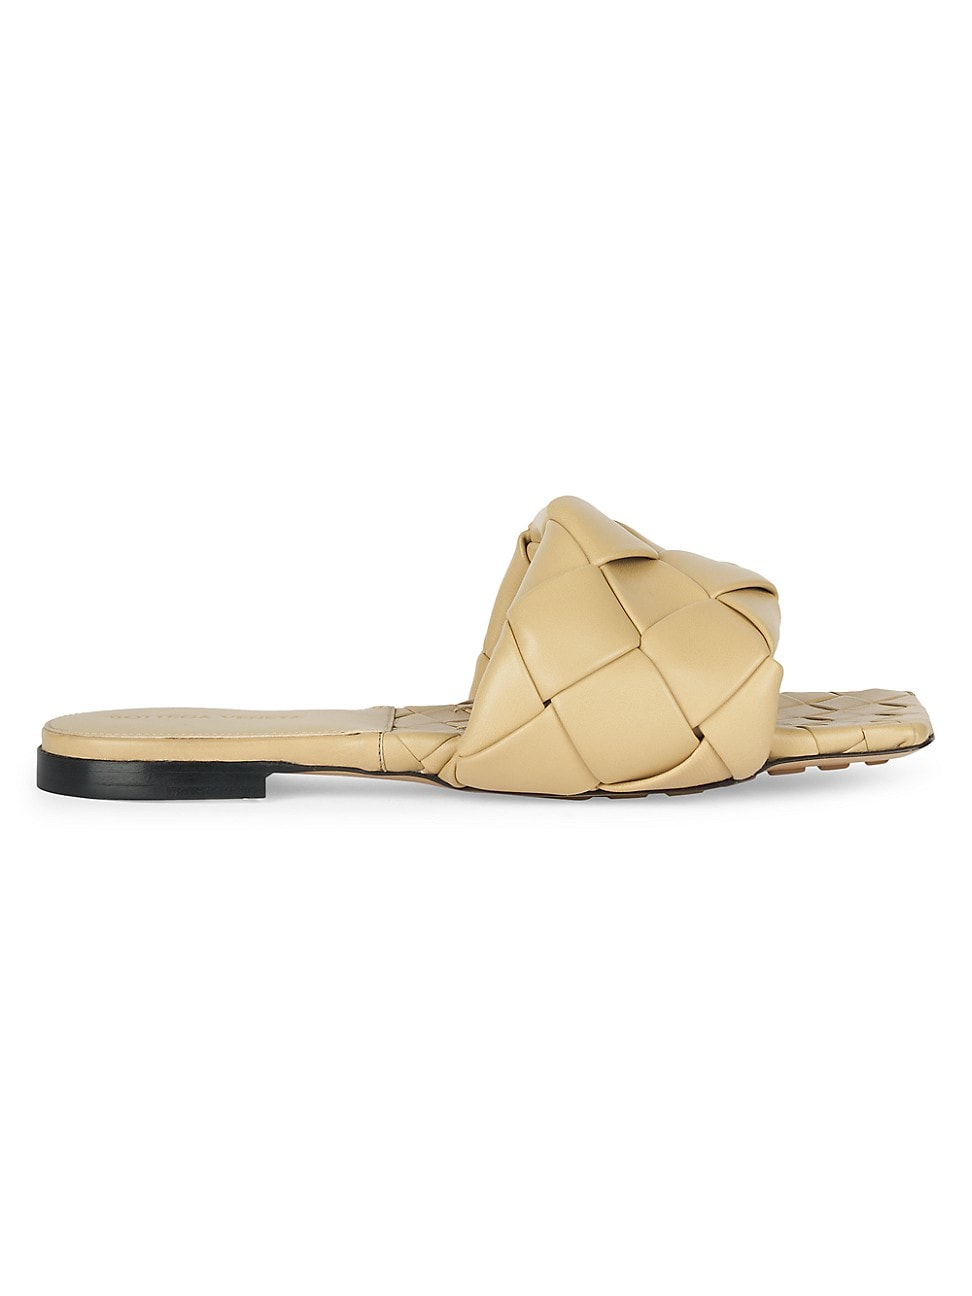 Bottega Veneta WOMEN'S LIDO FLAT LEATHER SANDALS